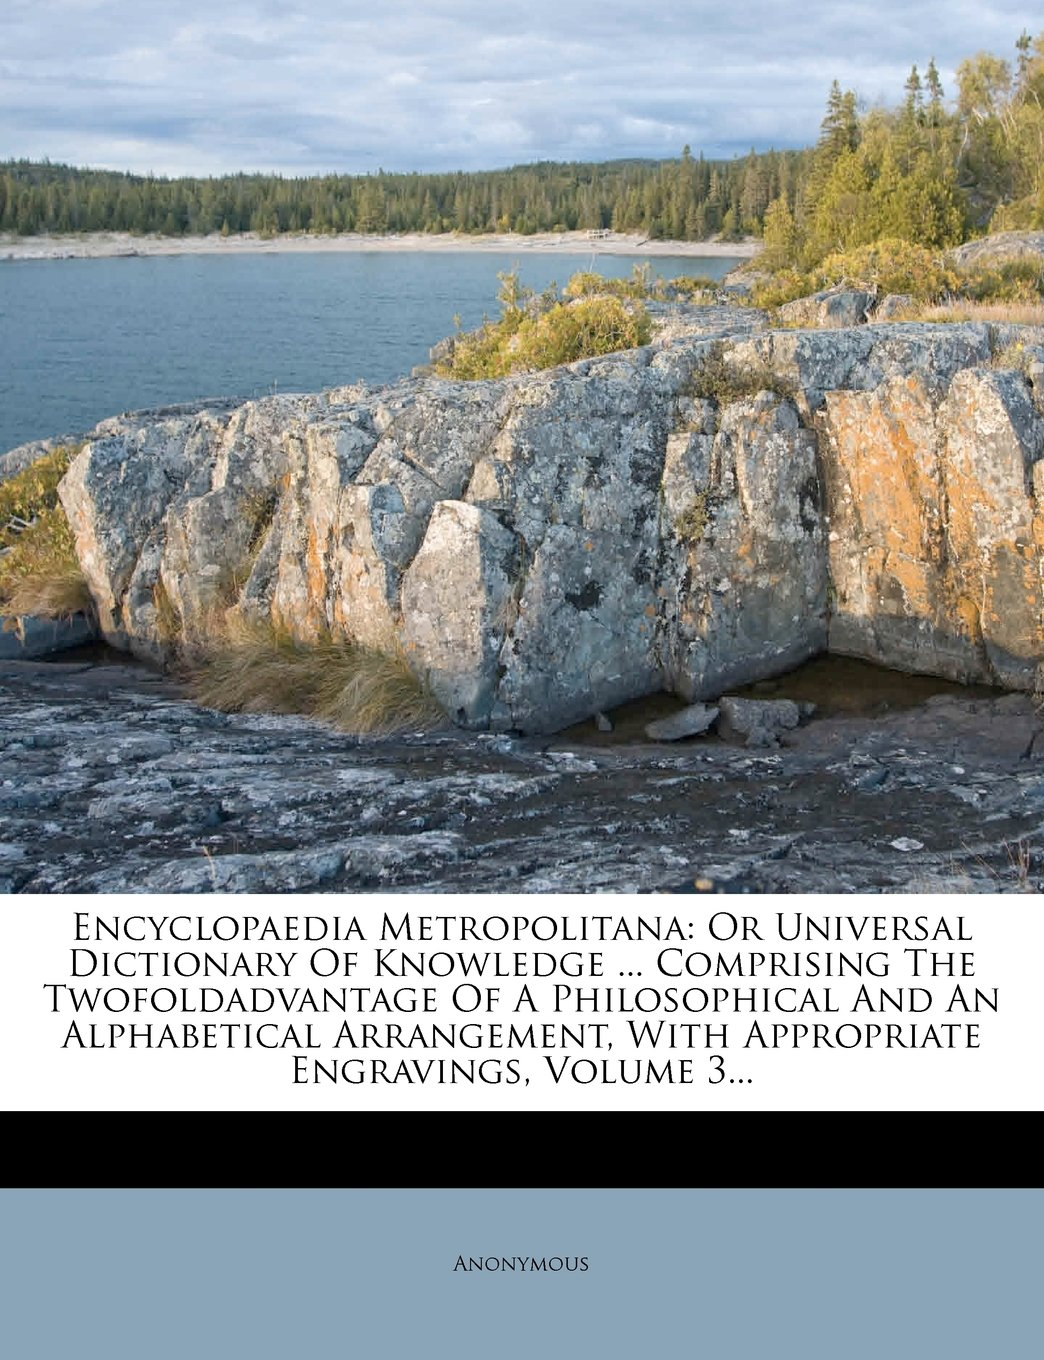 Read Online Encyclopaedia Metropolitana: Or Universal Dictionary Of Knowledge ... Comprising The Twofoldadvantage Of A Philosophical And An Alphabetical Arrangement, With Appropriate Engravings, Volume 3... pdf epub